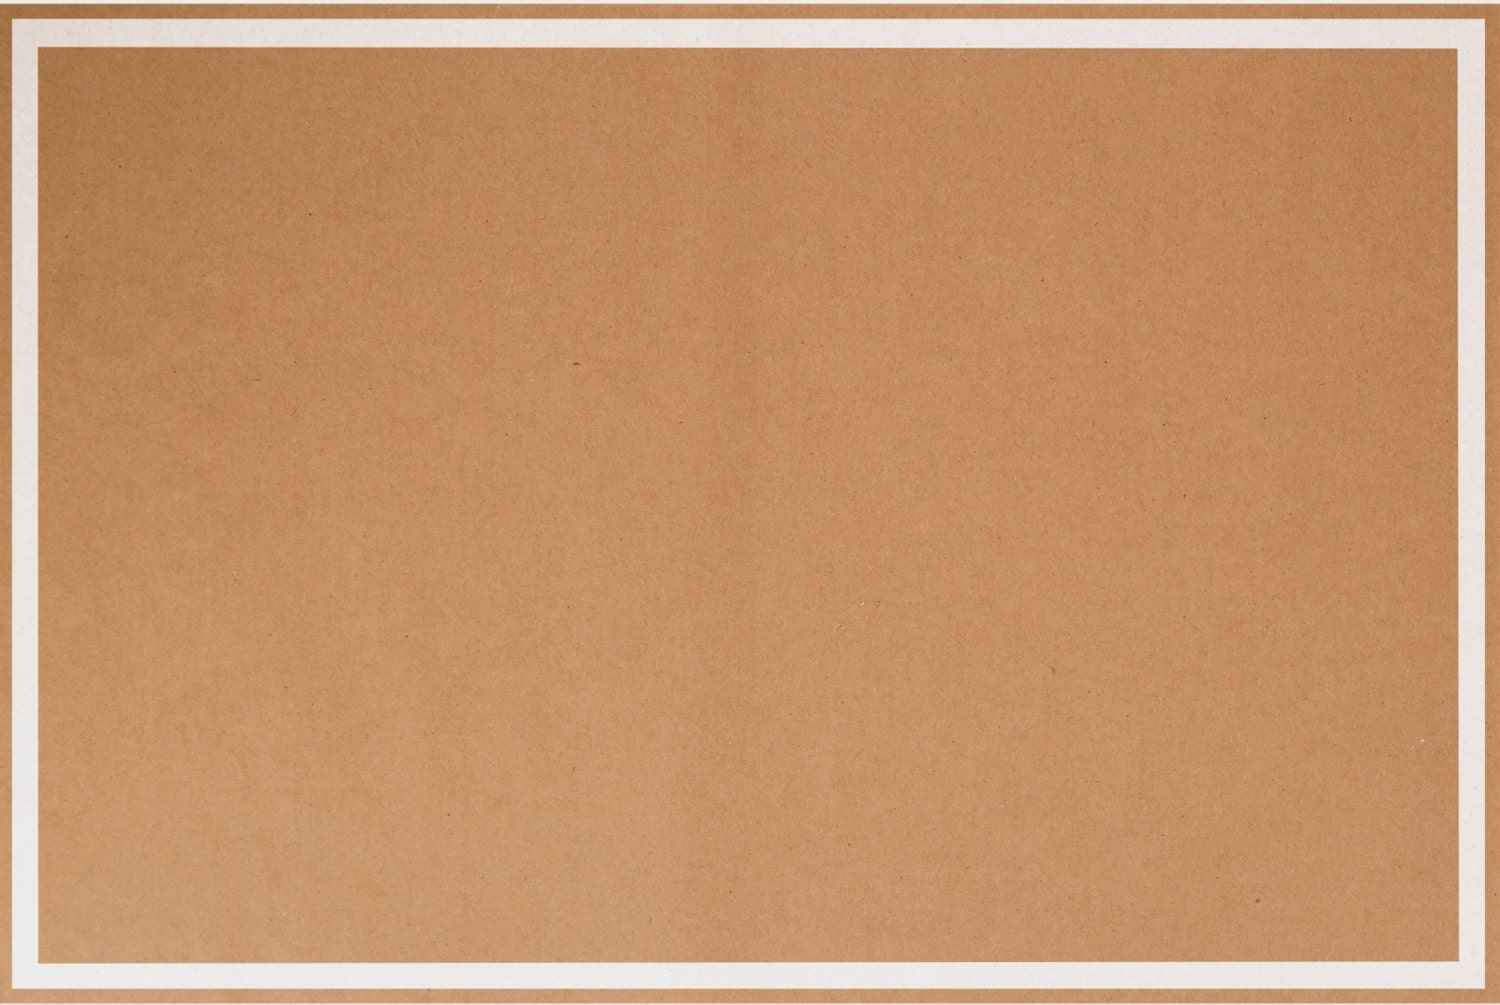 144 Paper Placemats Trendy Kraft Paper Brown With White